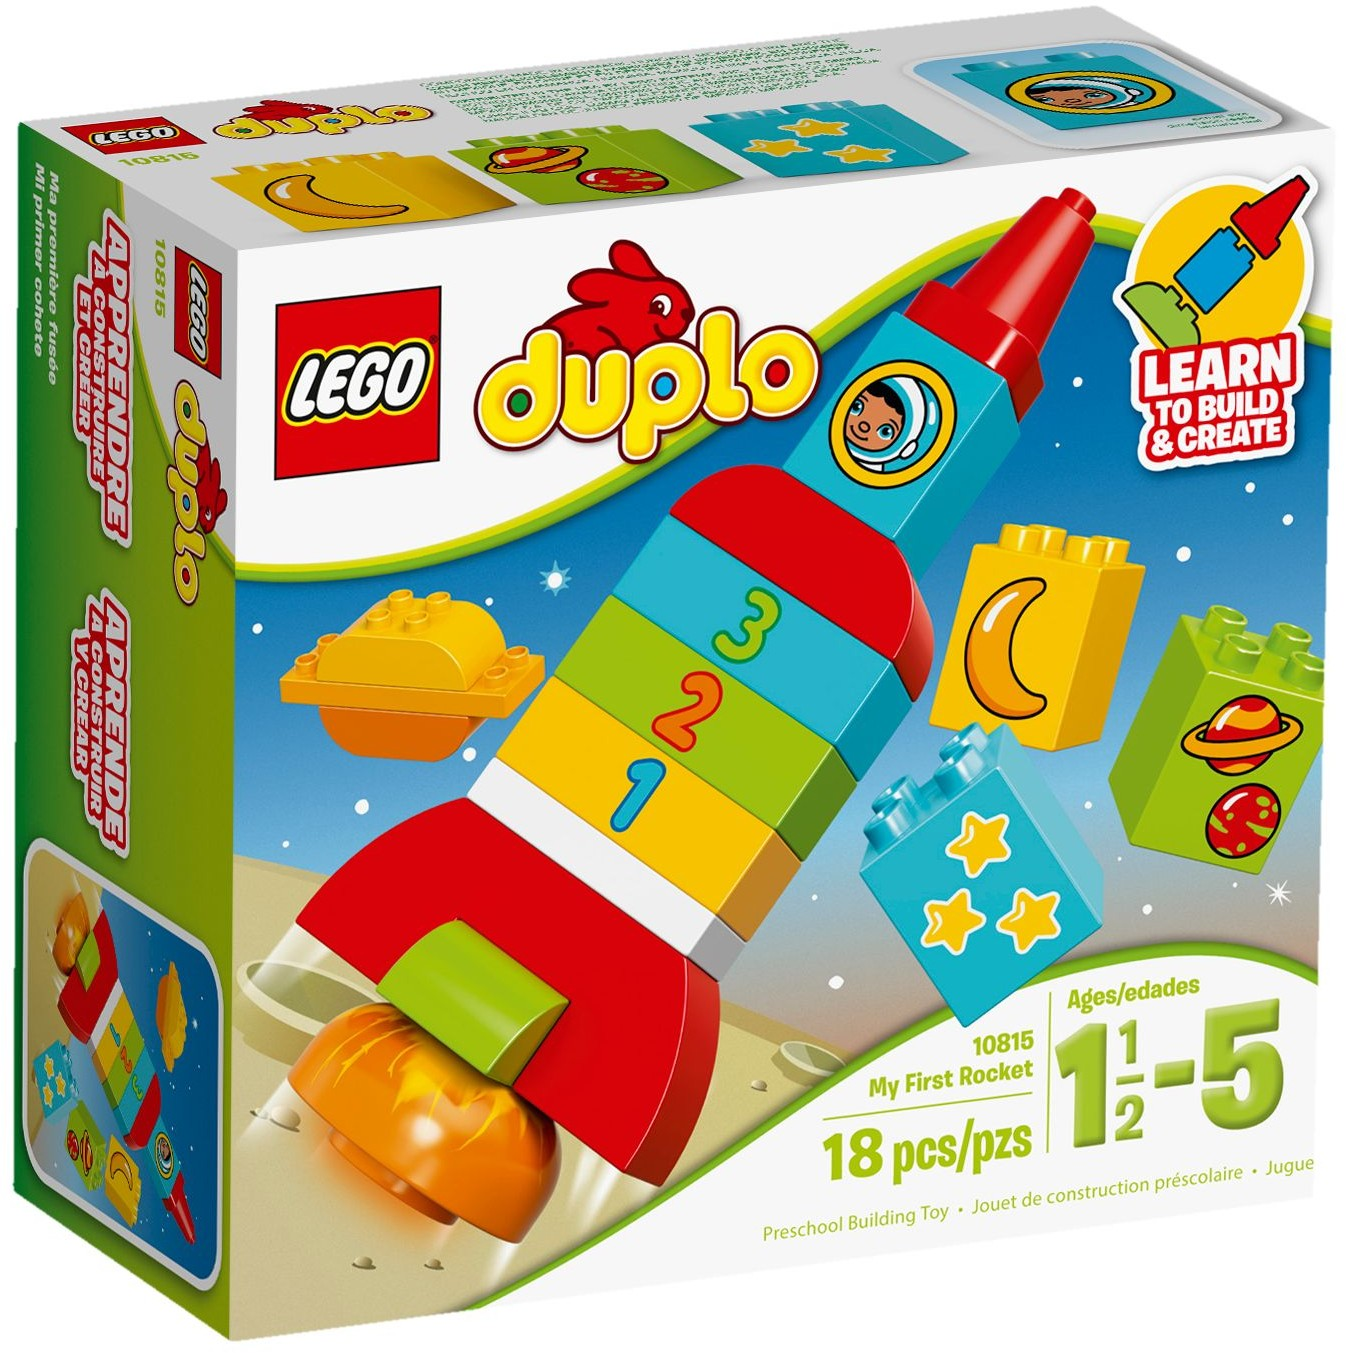 LEGO 10815 - Duplo - My First Rocket